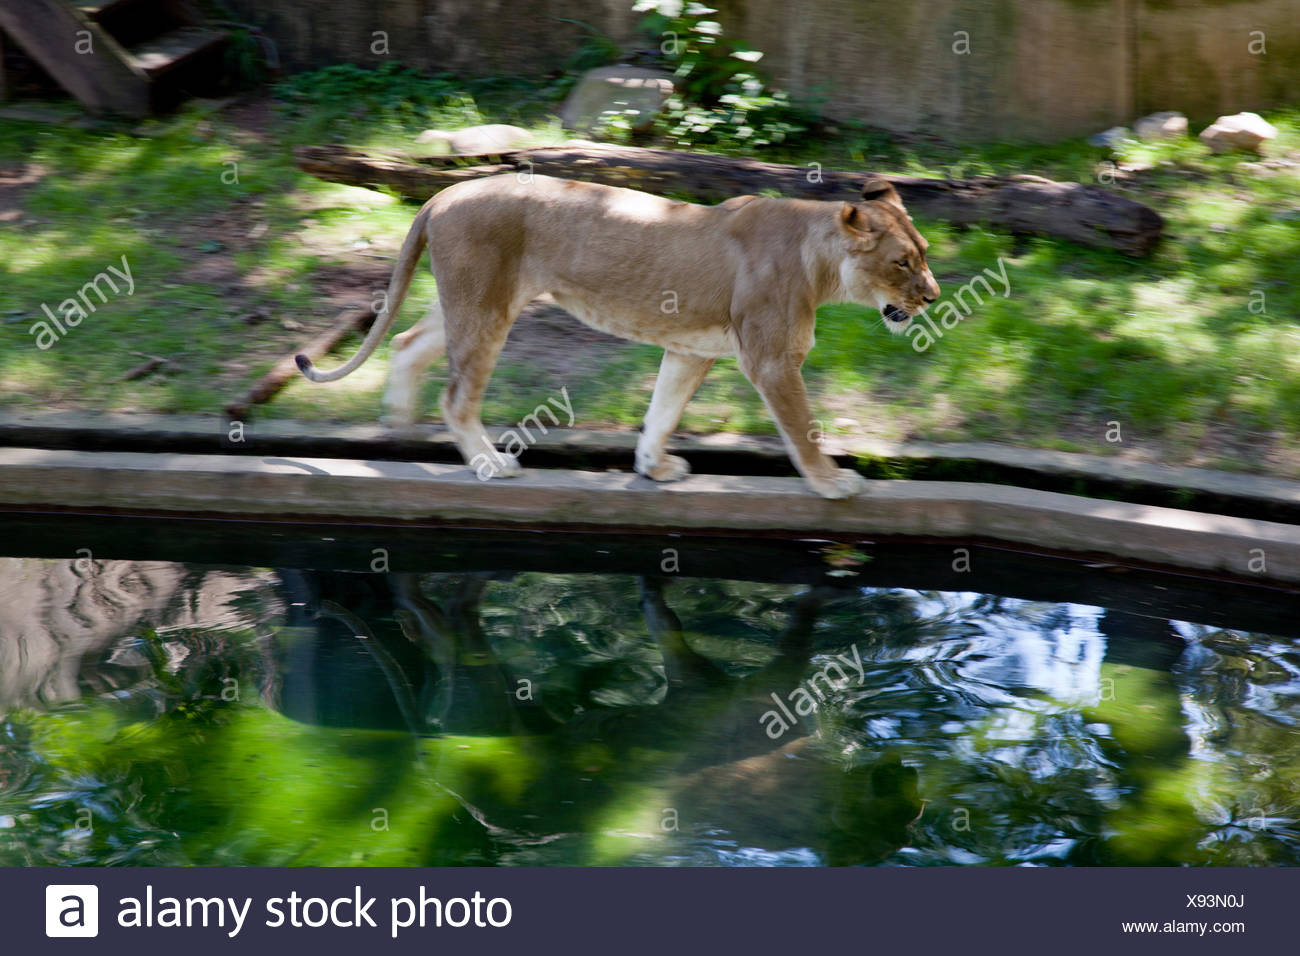 A lioness walks across a ramp at a the National Zoo in Washington DC. Stock Photo